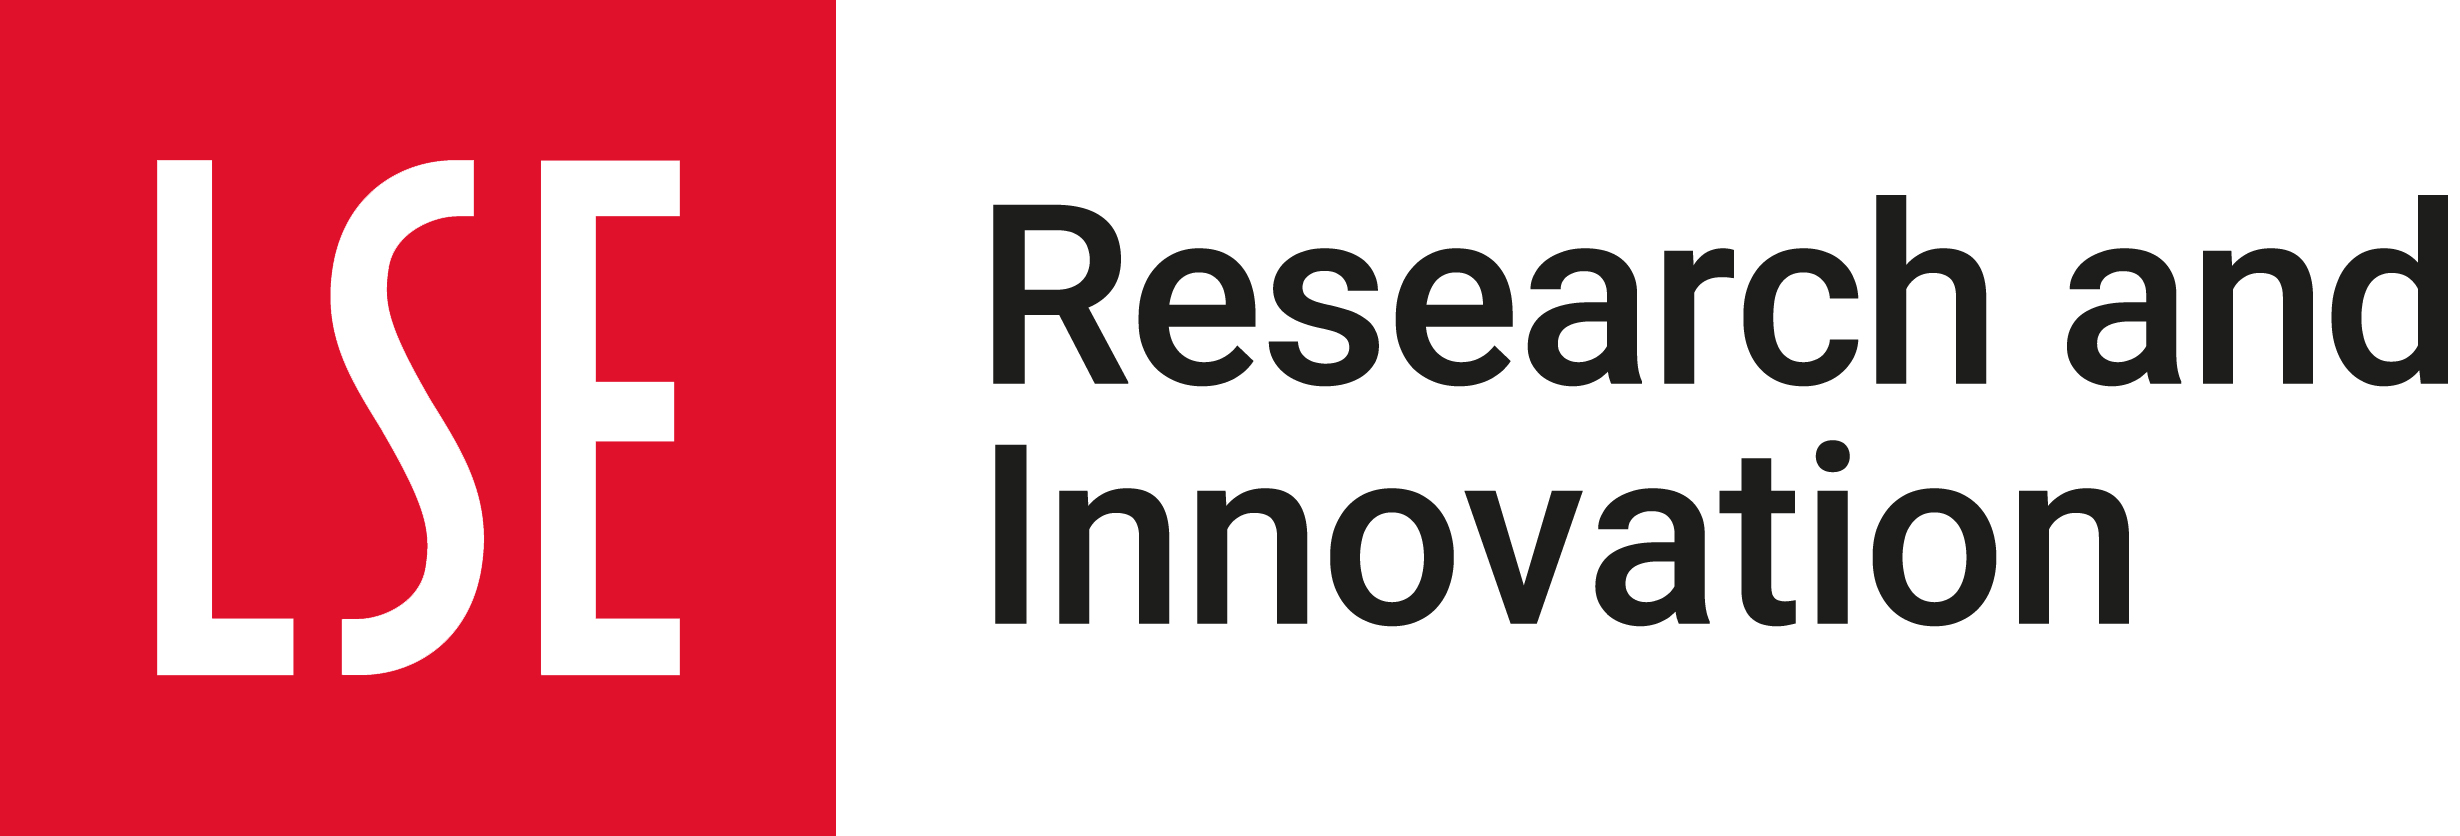 LSE Research and Innovation